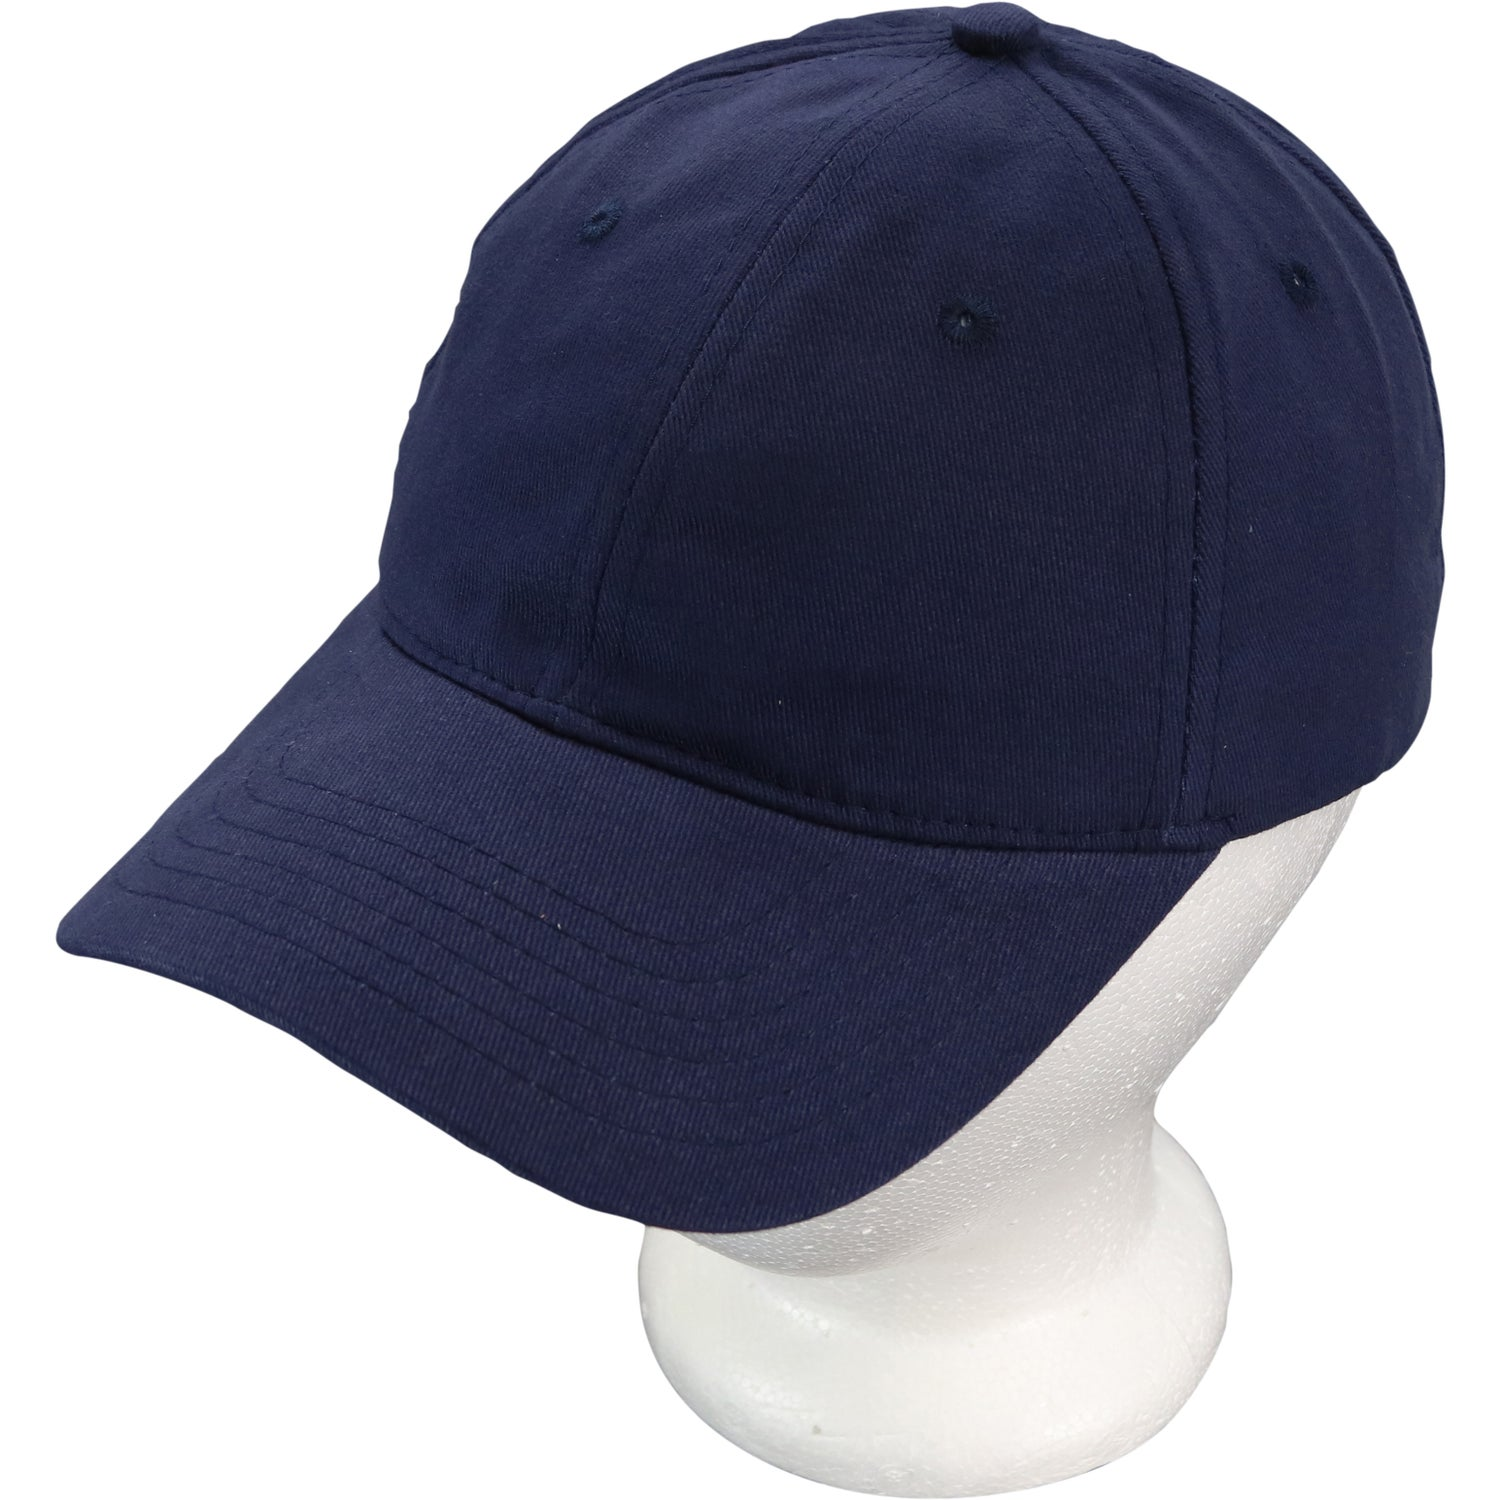 Promotional Buckle Lightweight Brushed Cotton Twill Hats with Custom Logo  for  4.60 Ea. a77e9c47c2a